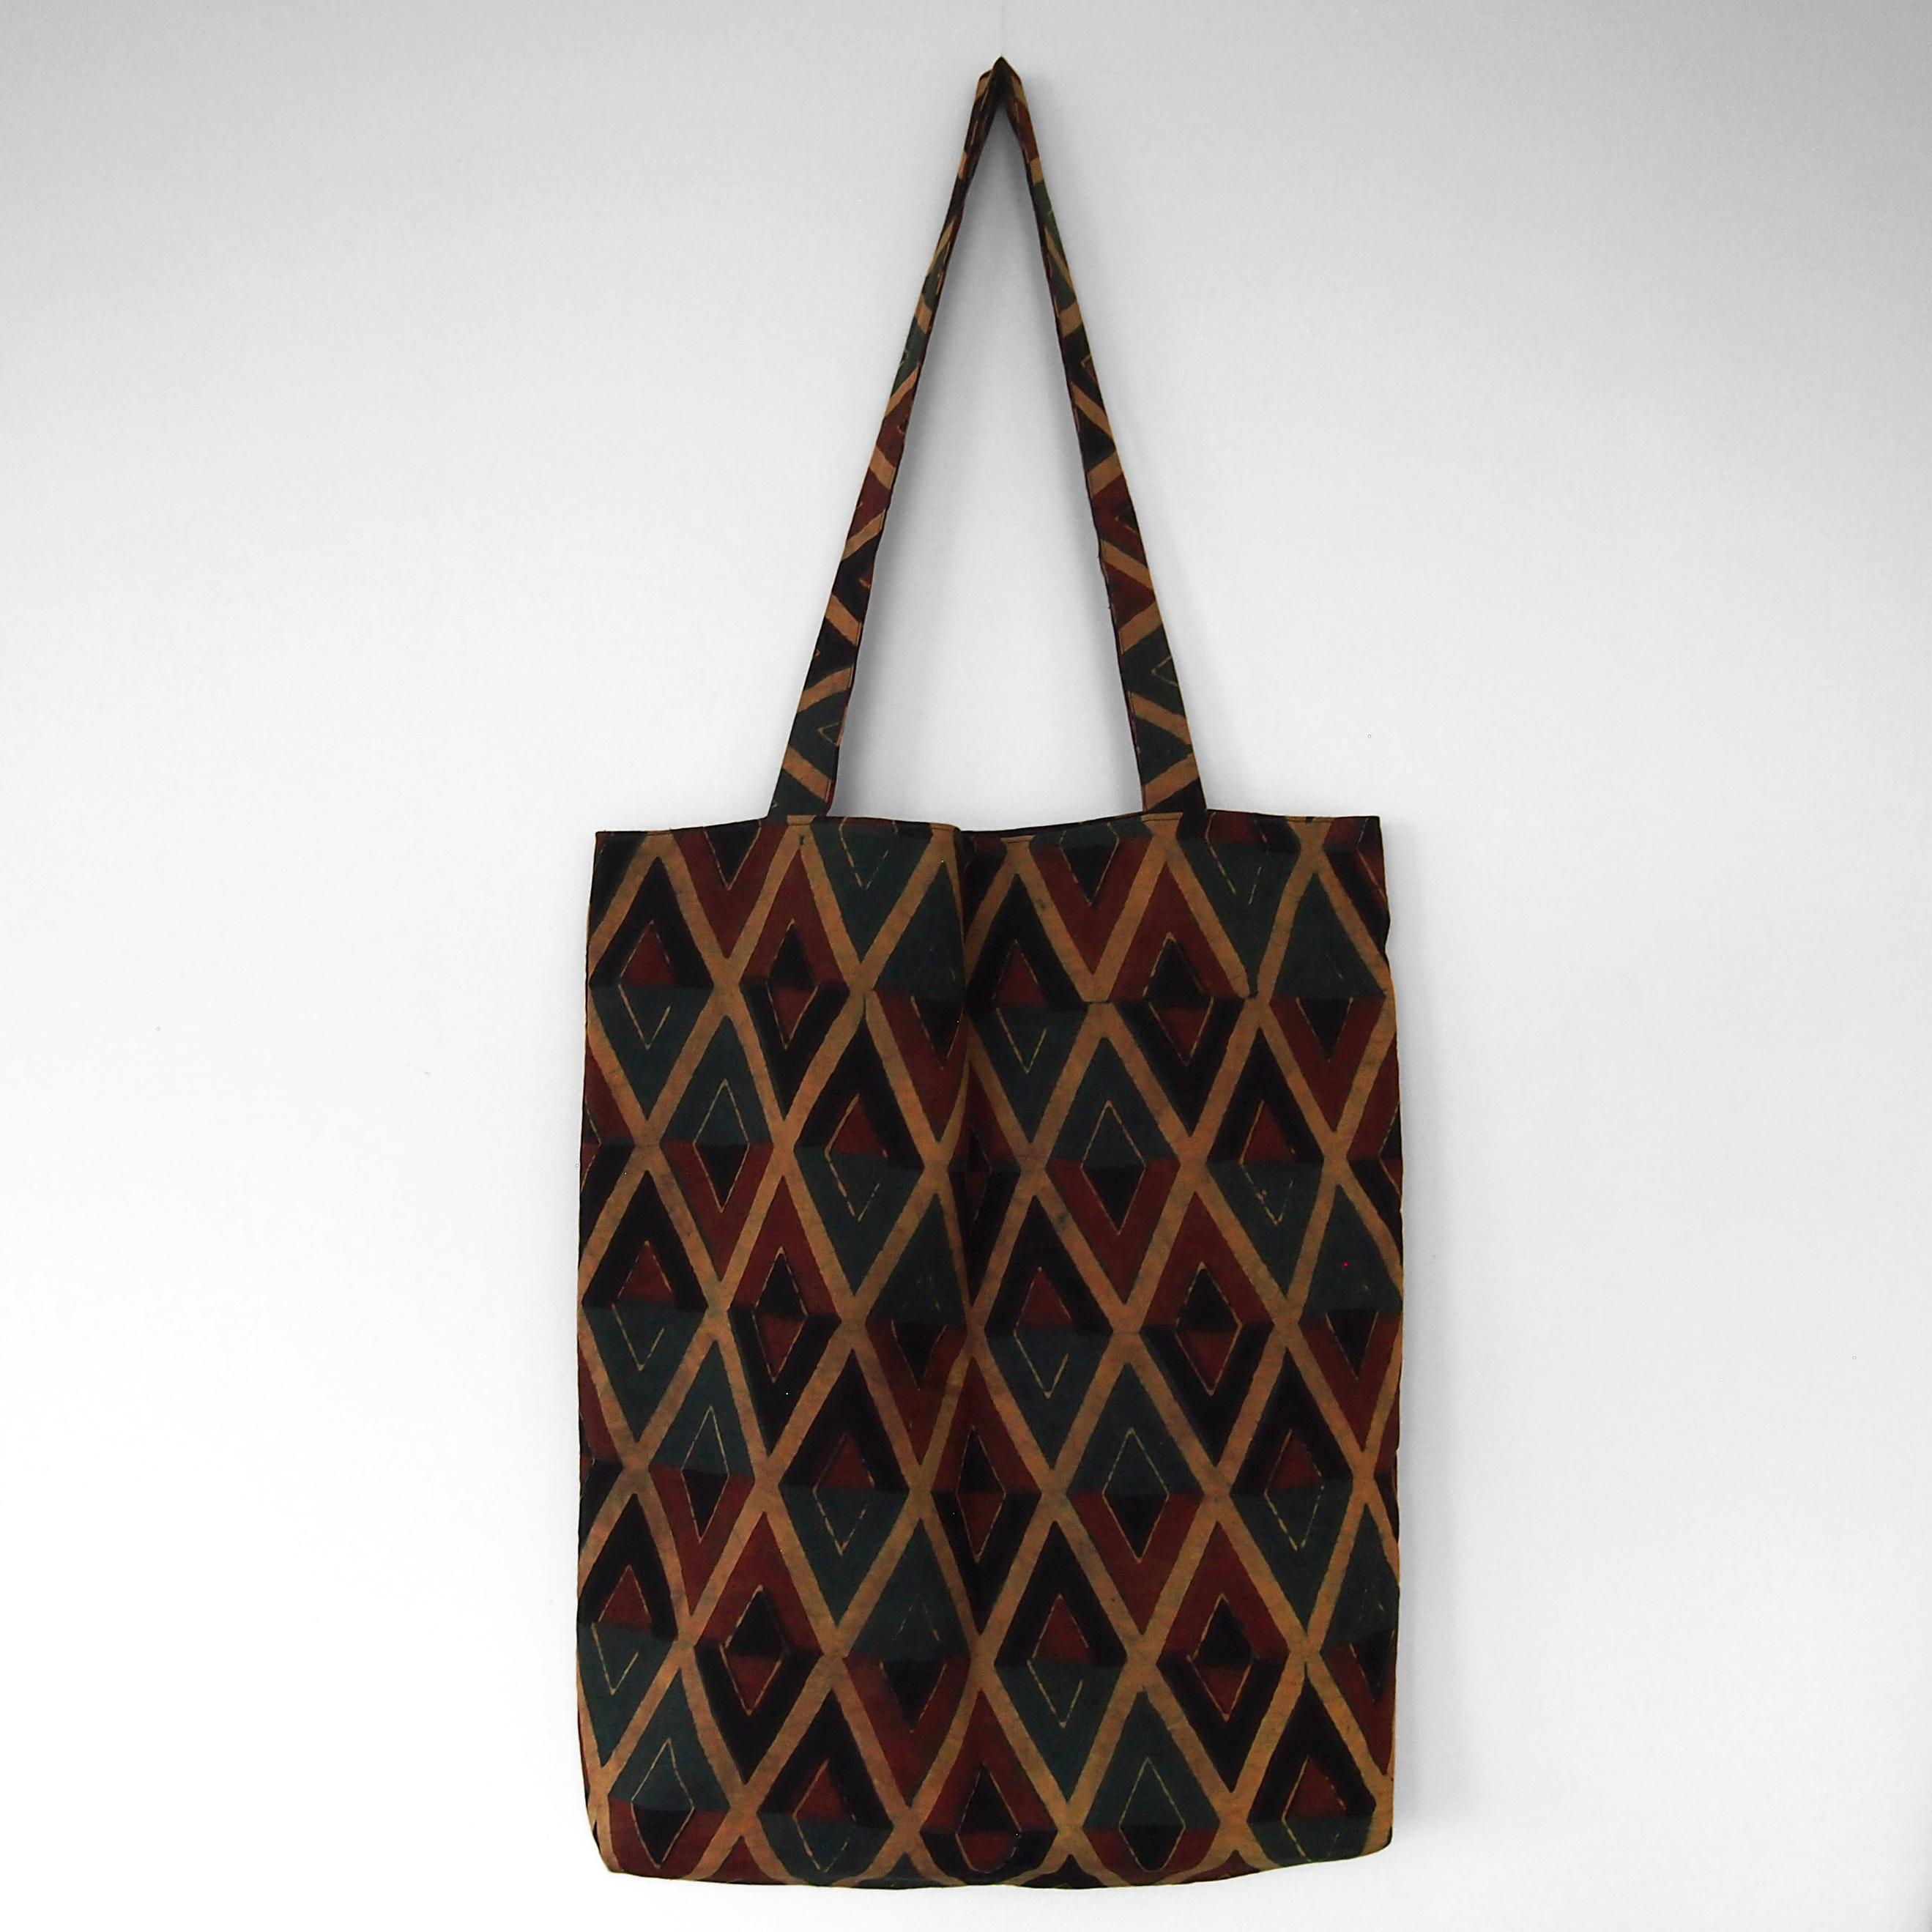 block printed cotton tote bag, natural dye, yellow, red green black diamond design, lined with black cotton, closed